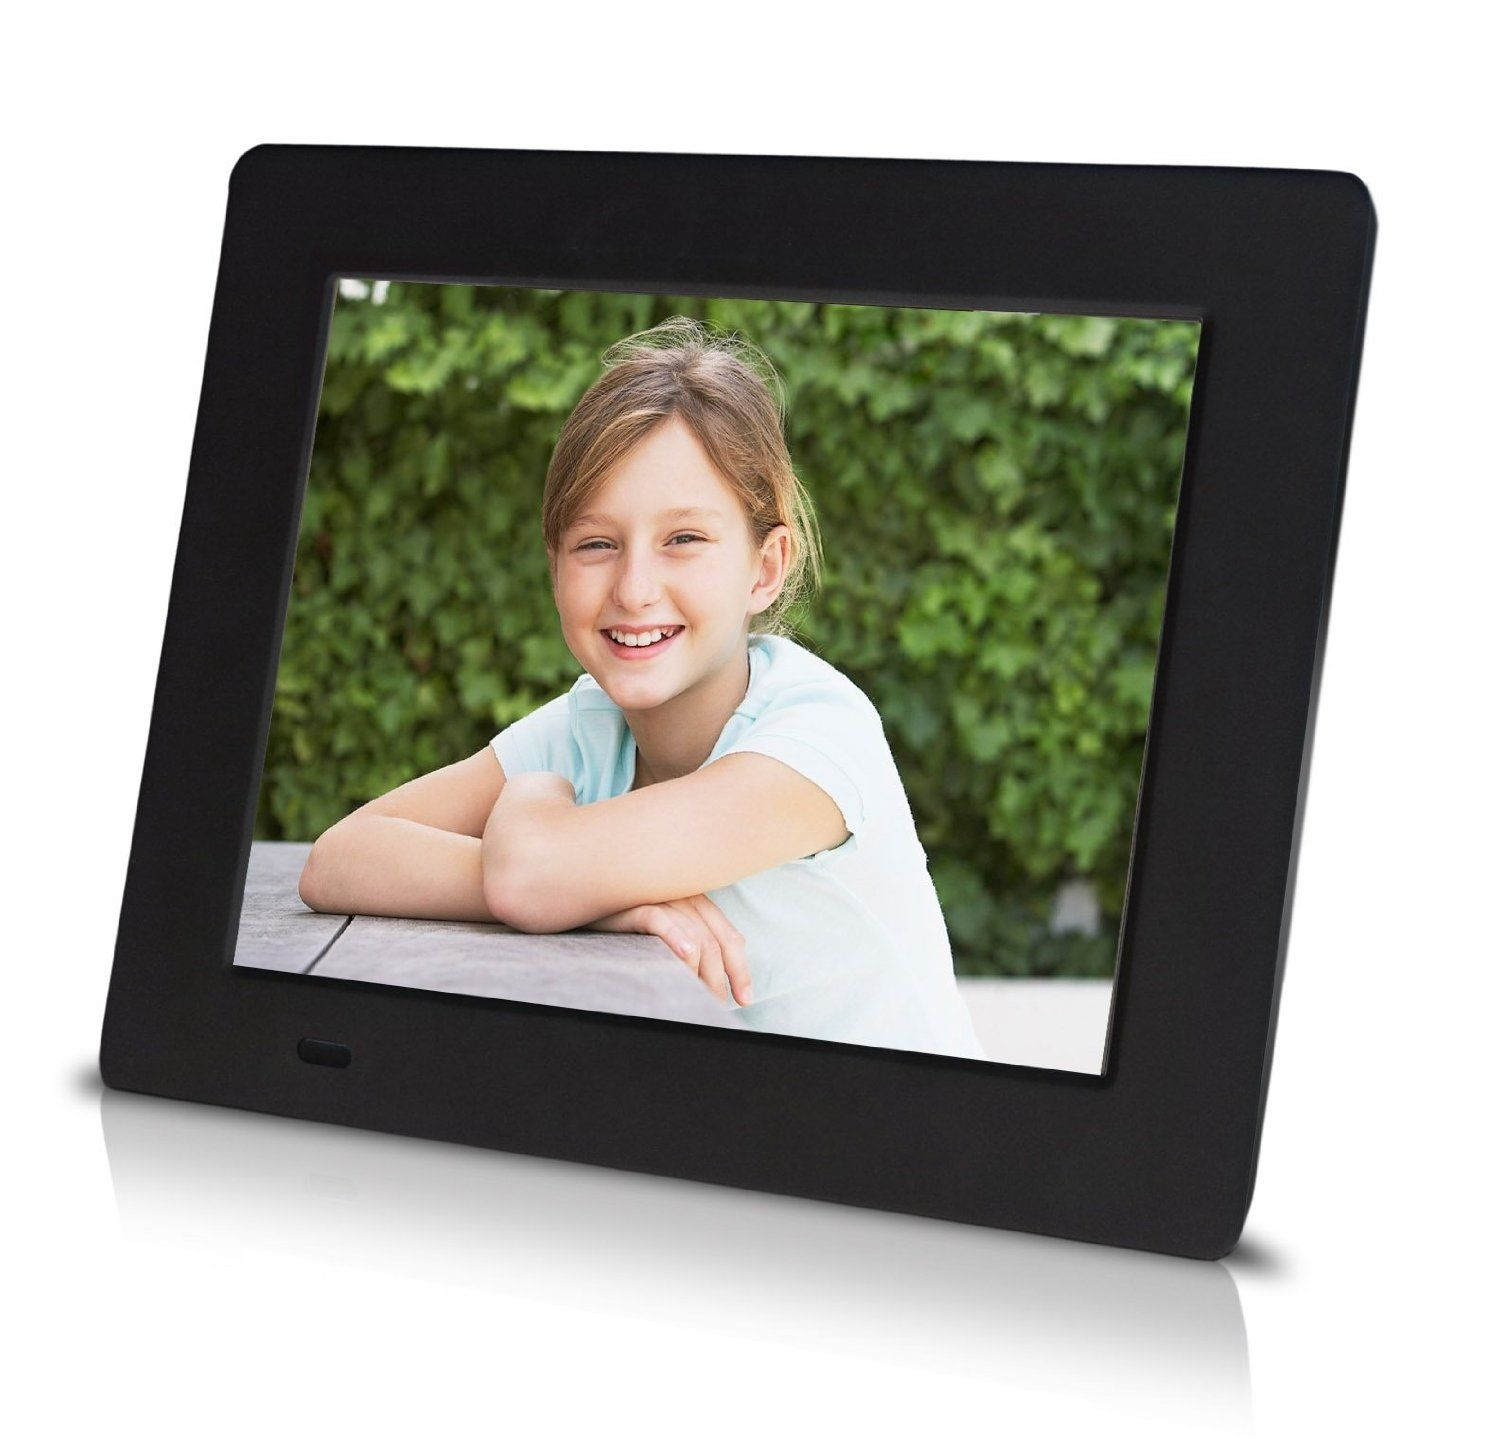 Amazoncom Sungale Pf709 7 Inch Ultra Slim Digital Photo Frame